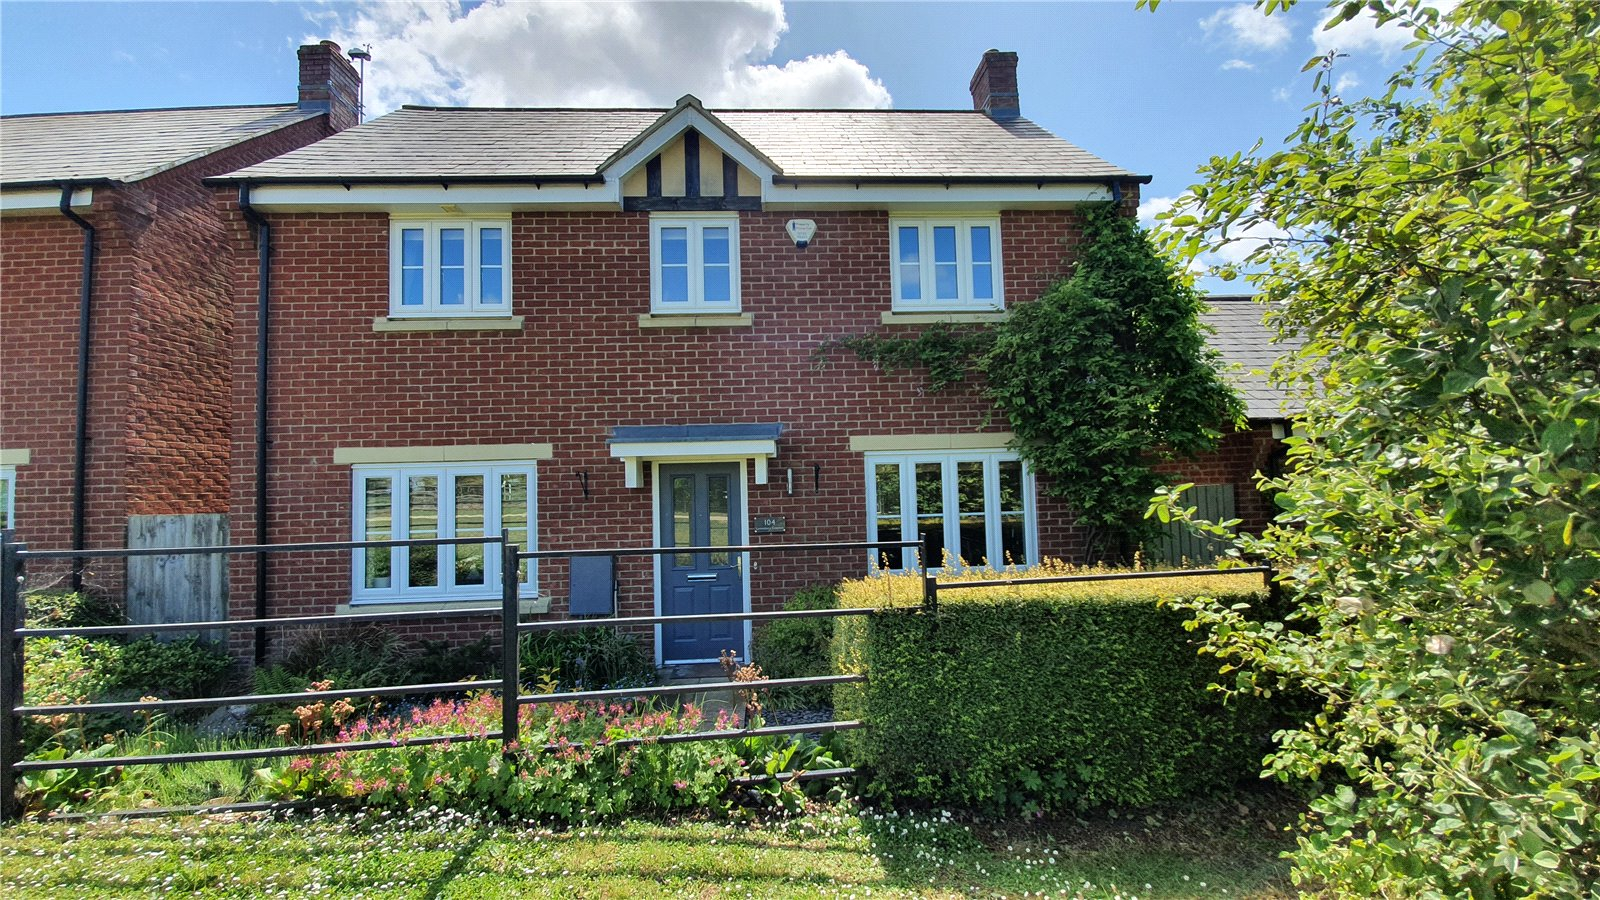 3 bed house for sale in Lannesbury Crescent, St Neots, PE19